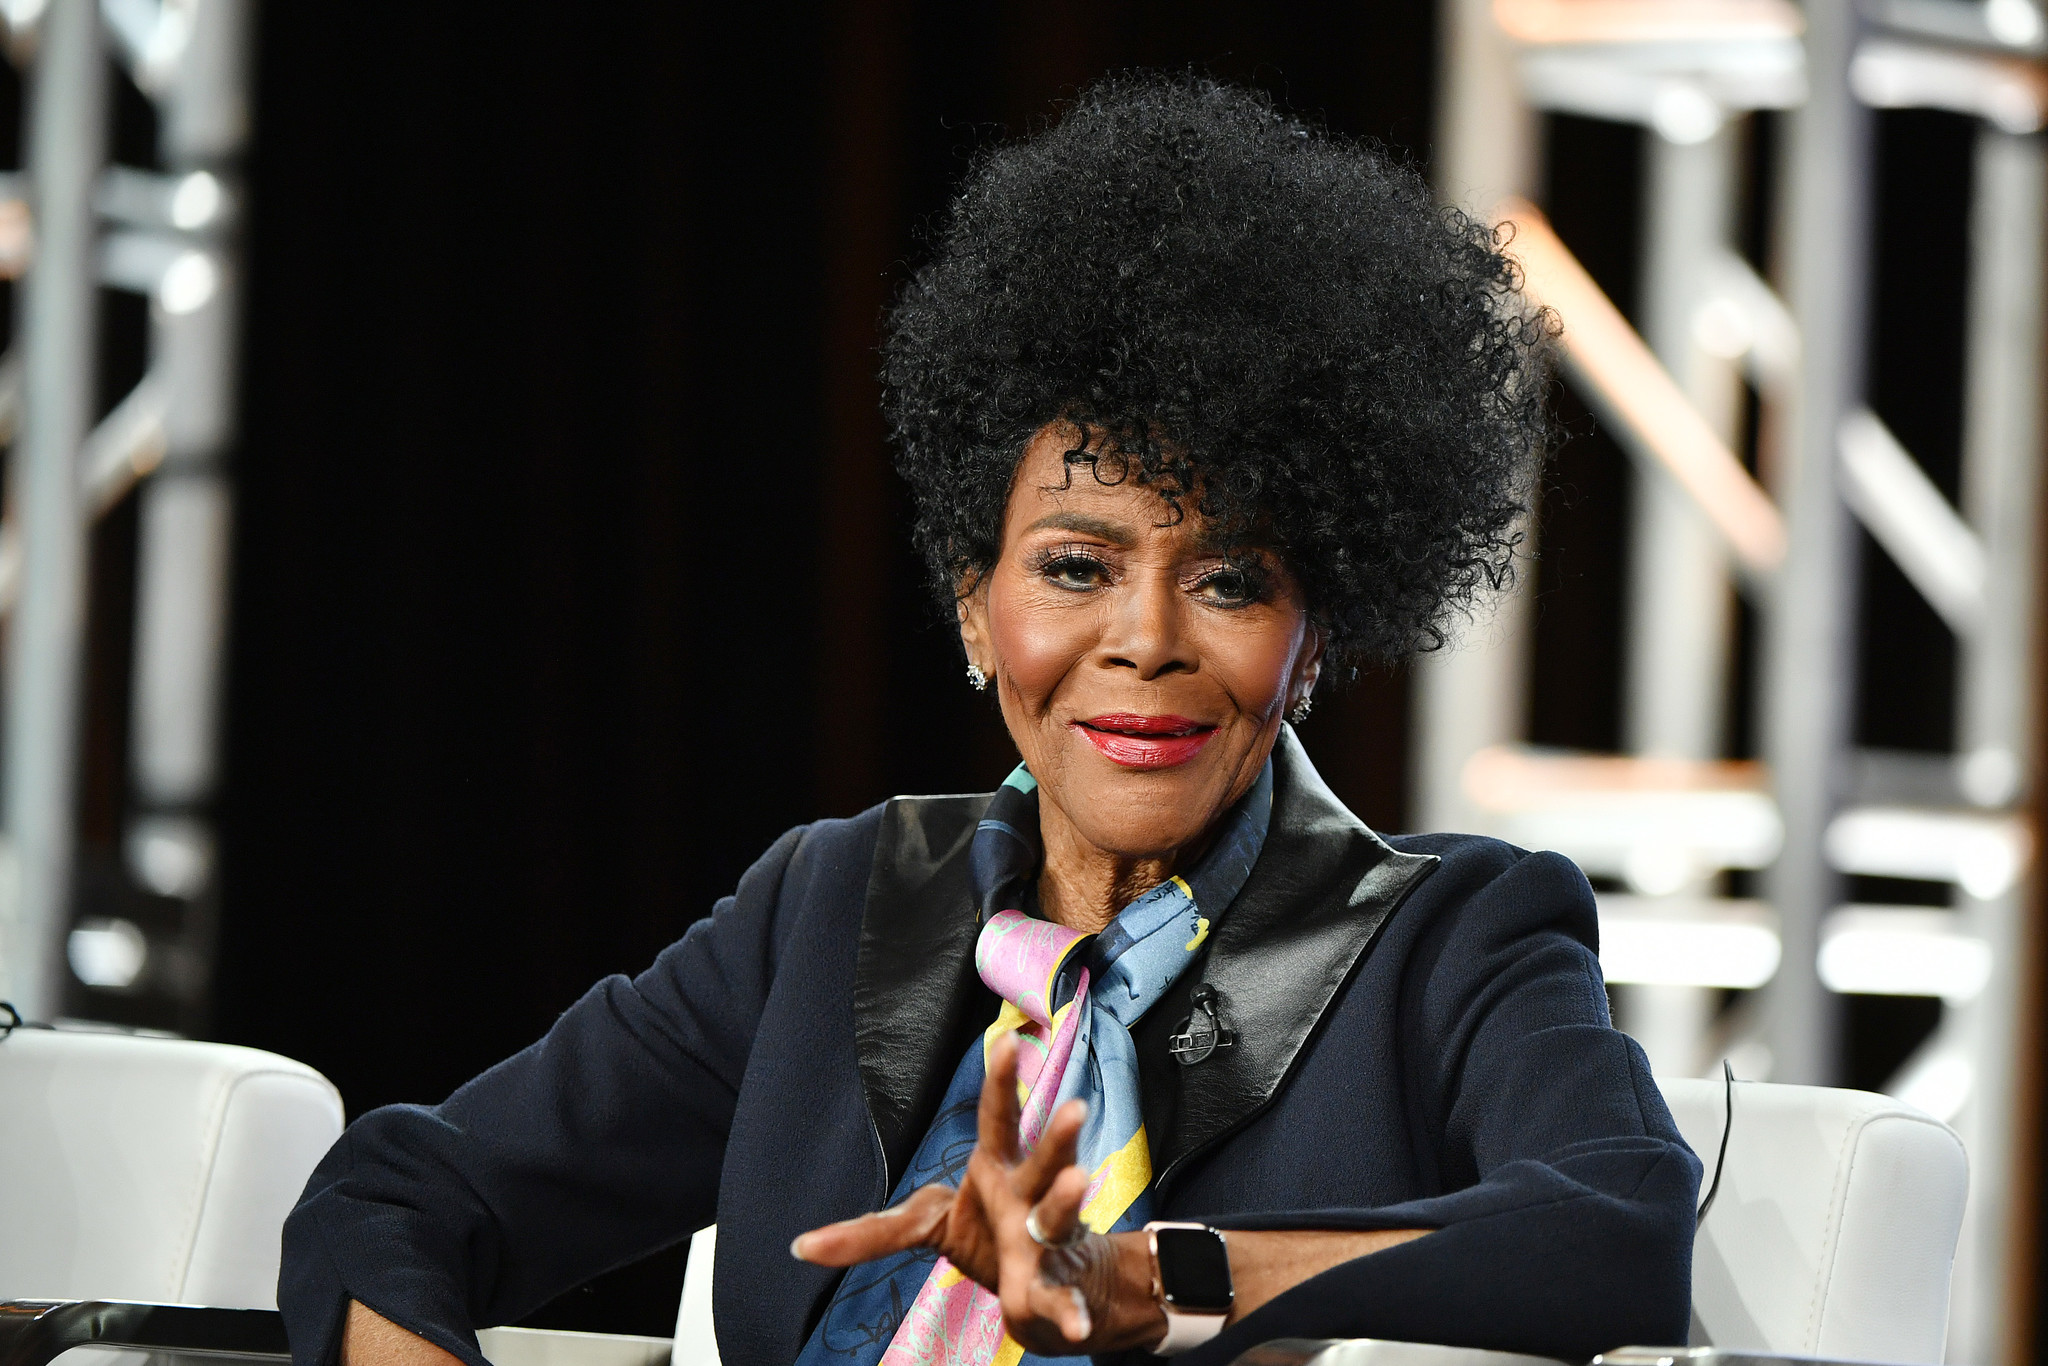 Cicely Tyson to return to three-time Emmy nominated 'How to Get Away With Murder' role for final season